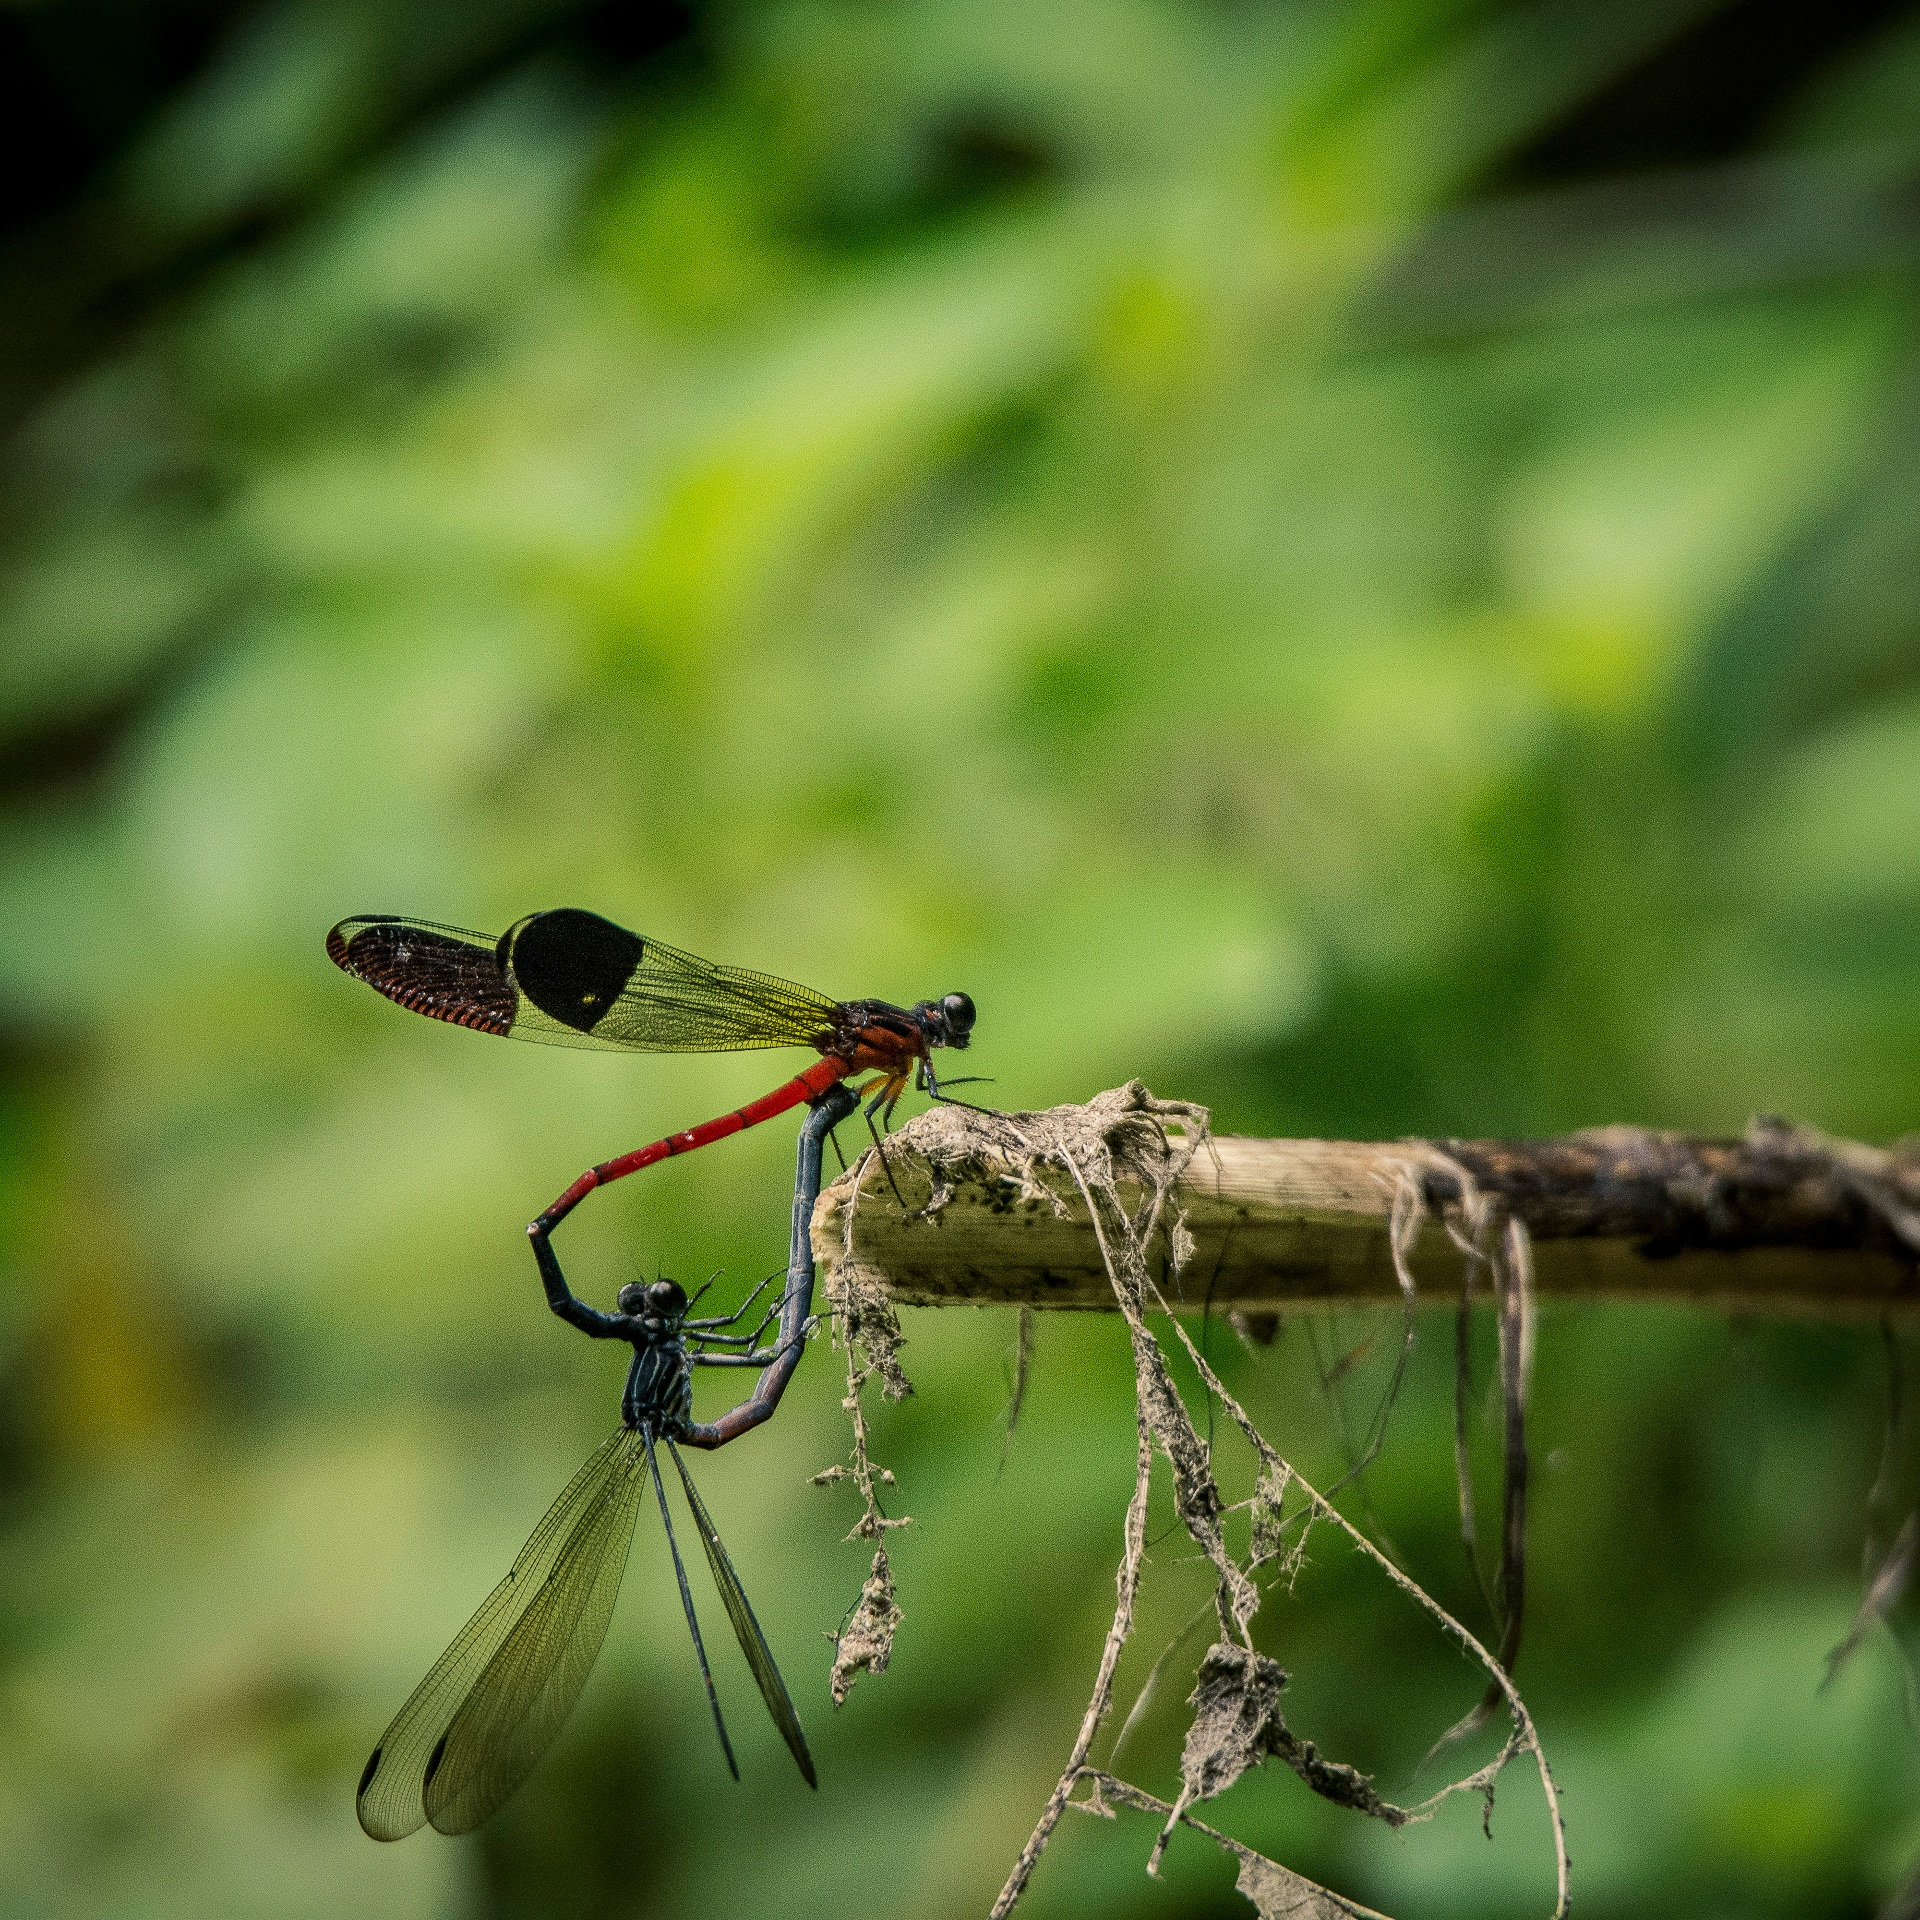 We think of both species as delicate insects with gossamer wings, but this avatar is only the last stage in the life-cycle of an odonate. Both damsel and dragonflies begin their lives in eggs, then hatch into larvae, and evolve into the wingless nymph stage, when they eat voraciously and moult a number of times. This is an image of two damselflies mating a few feet from a flowing stream in Devala, Tamil Nadu. Photo: Samuel John